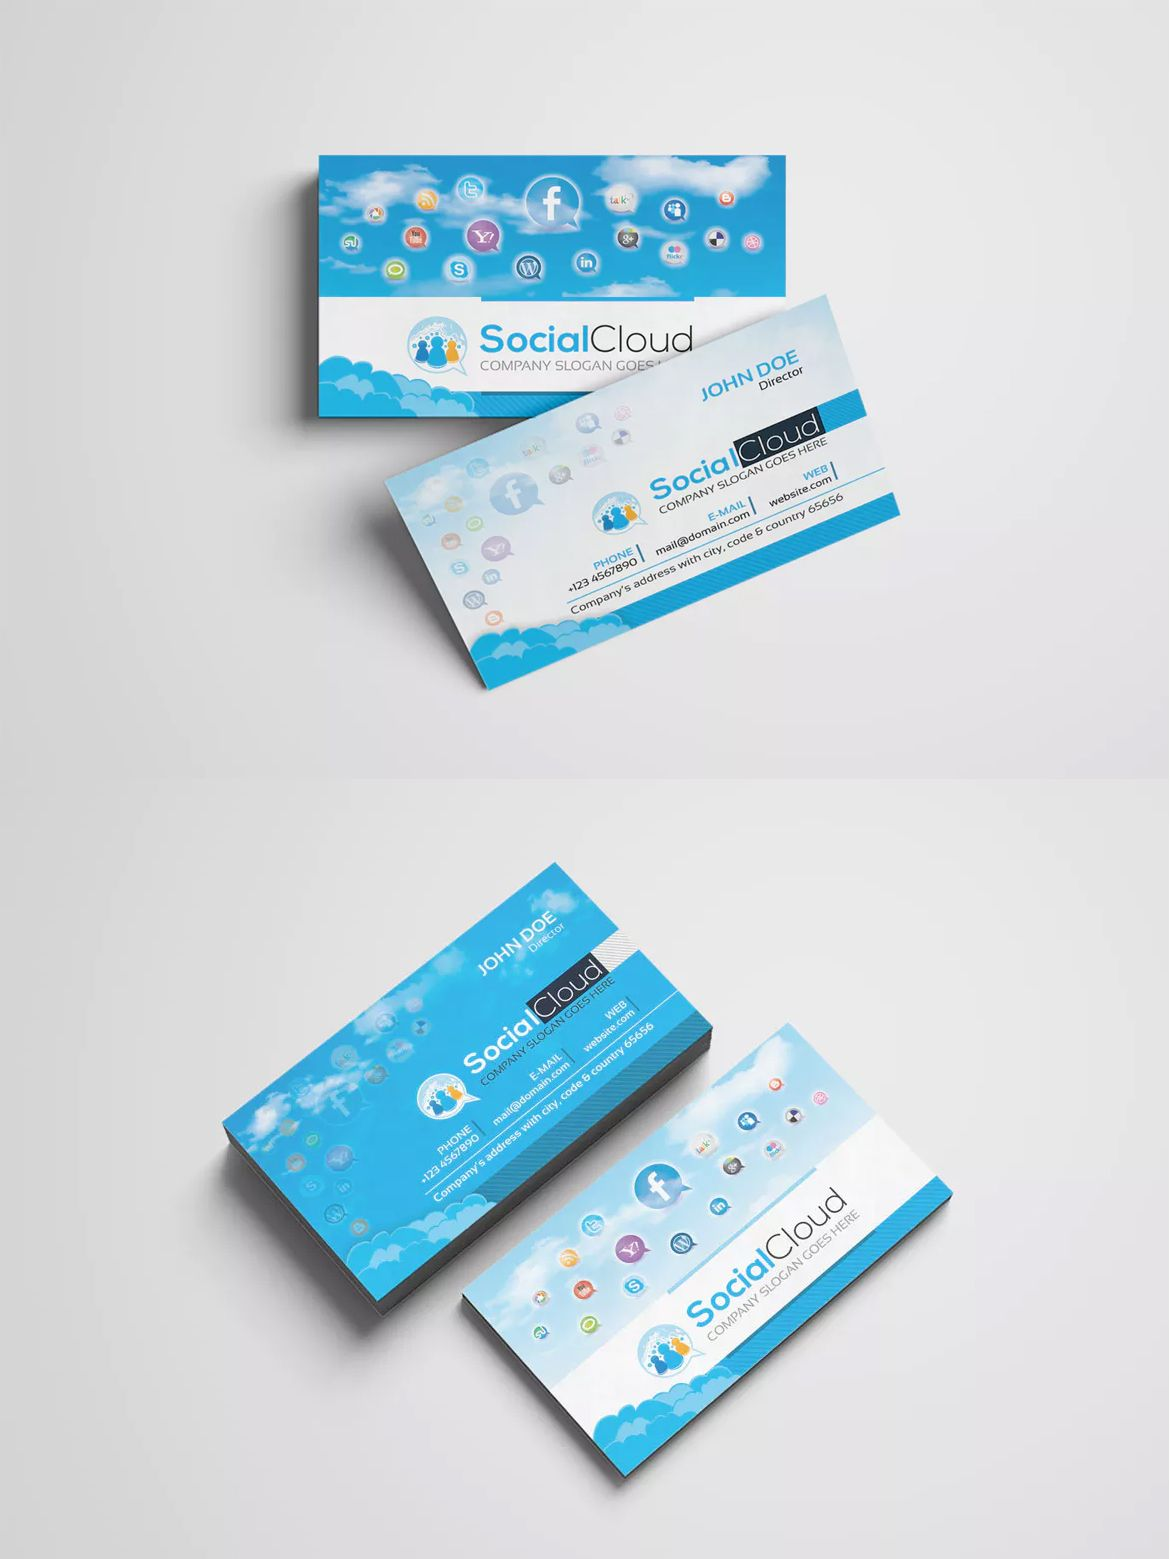 Social Media Business Card Design Template AI  EPS  PSD   Business     Social Media Business Card Design Template AI  EPS  PSD